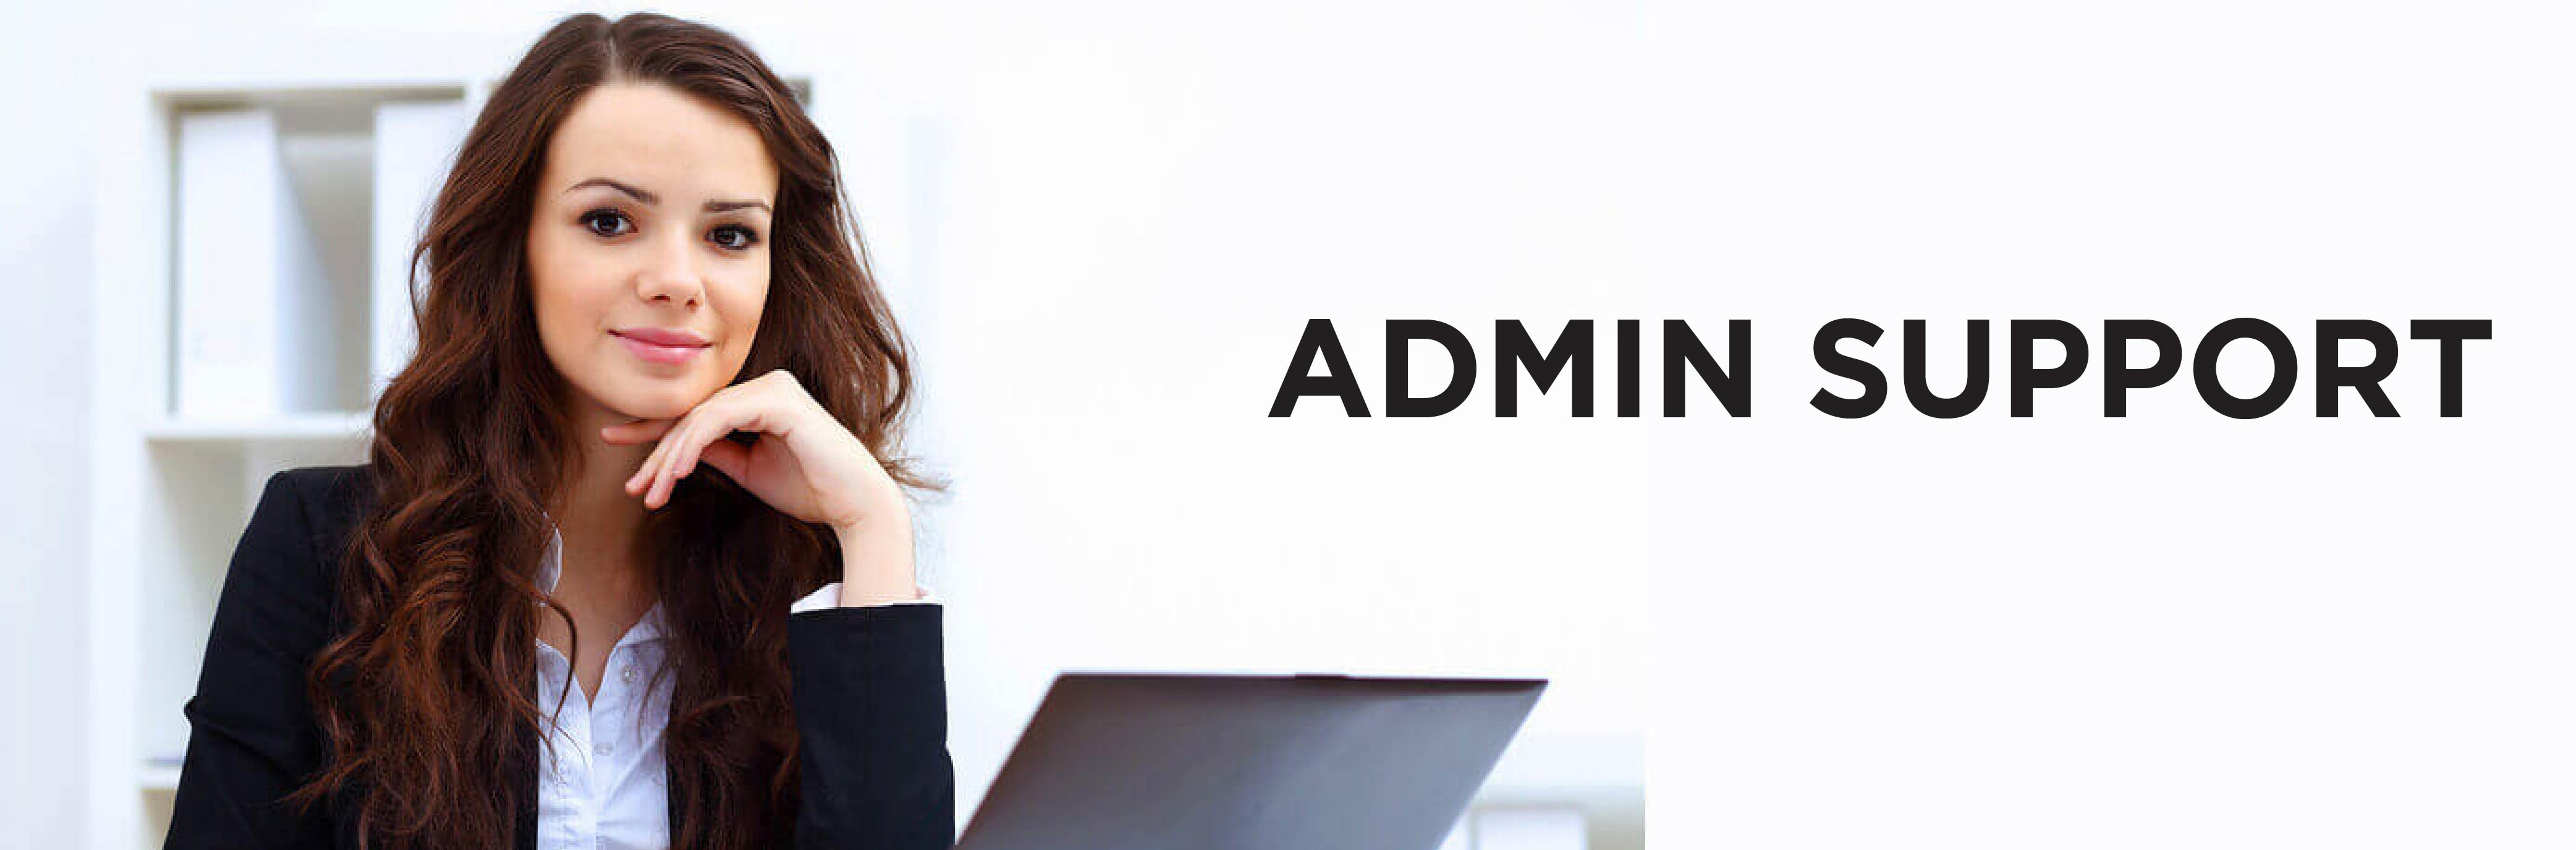 Admin Support-Virtual Assistance